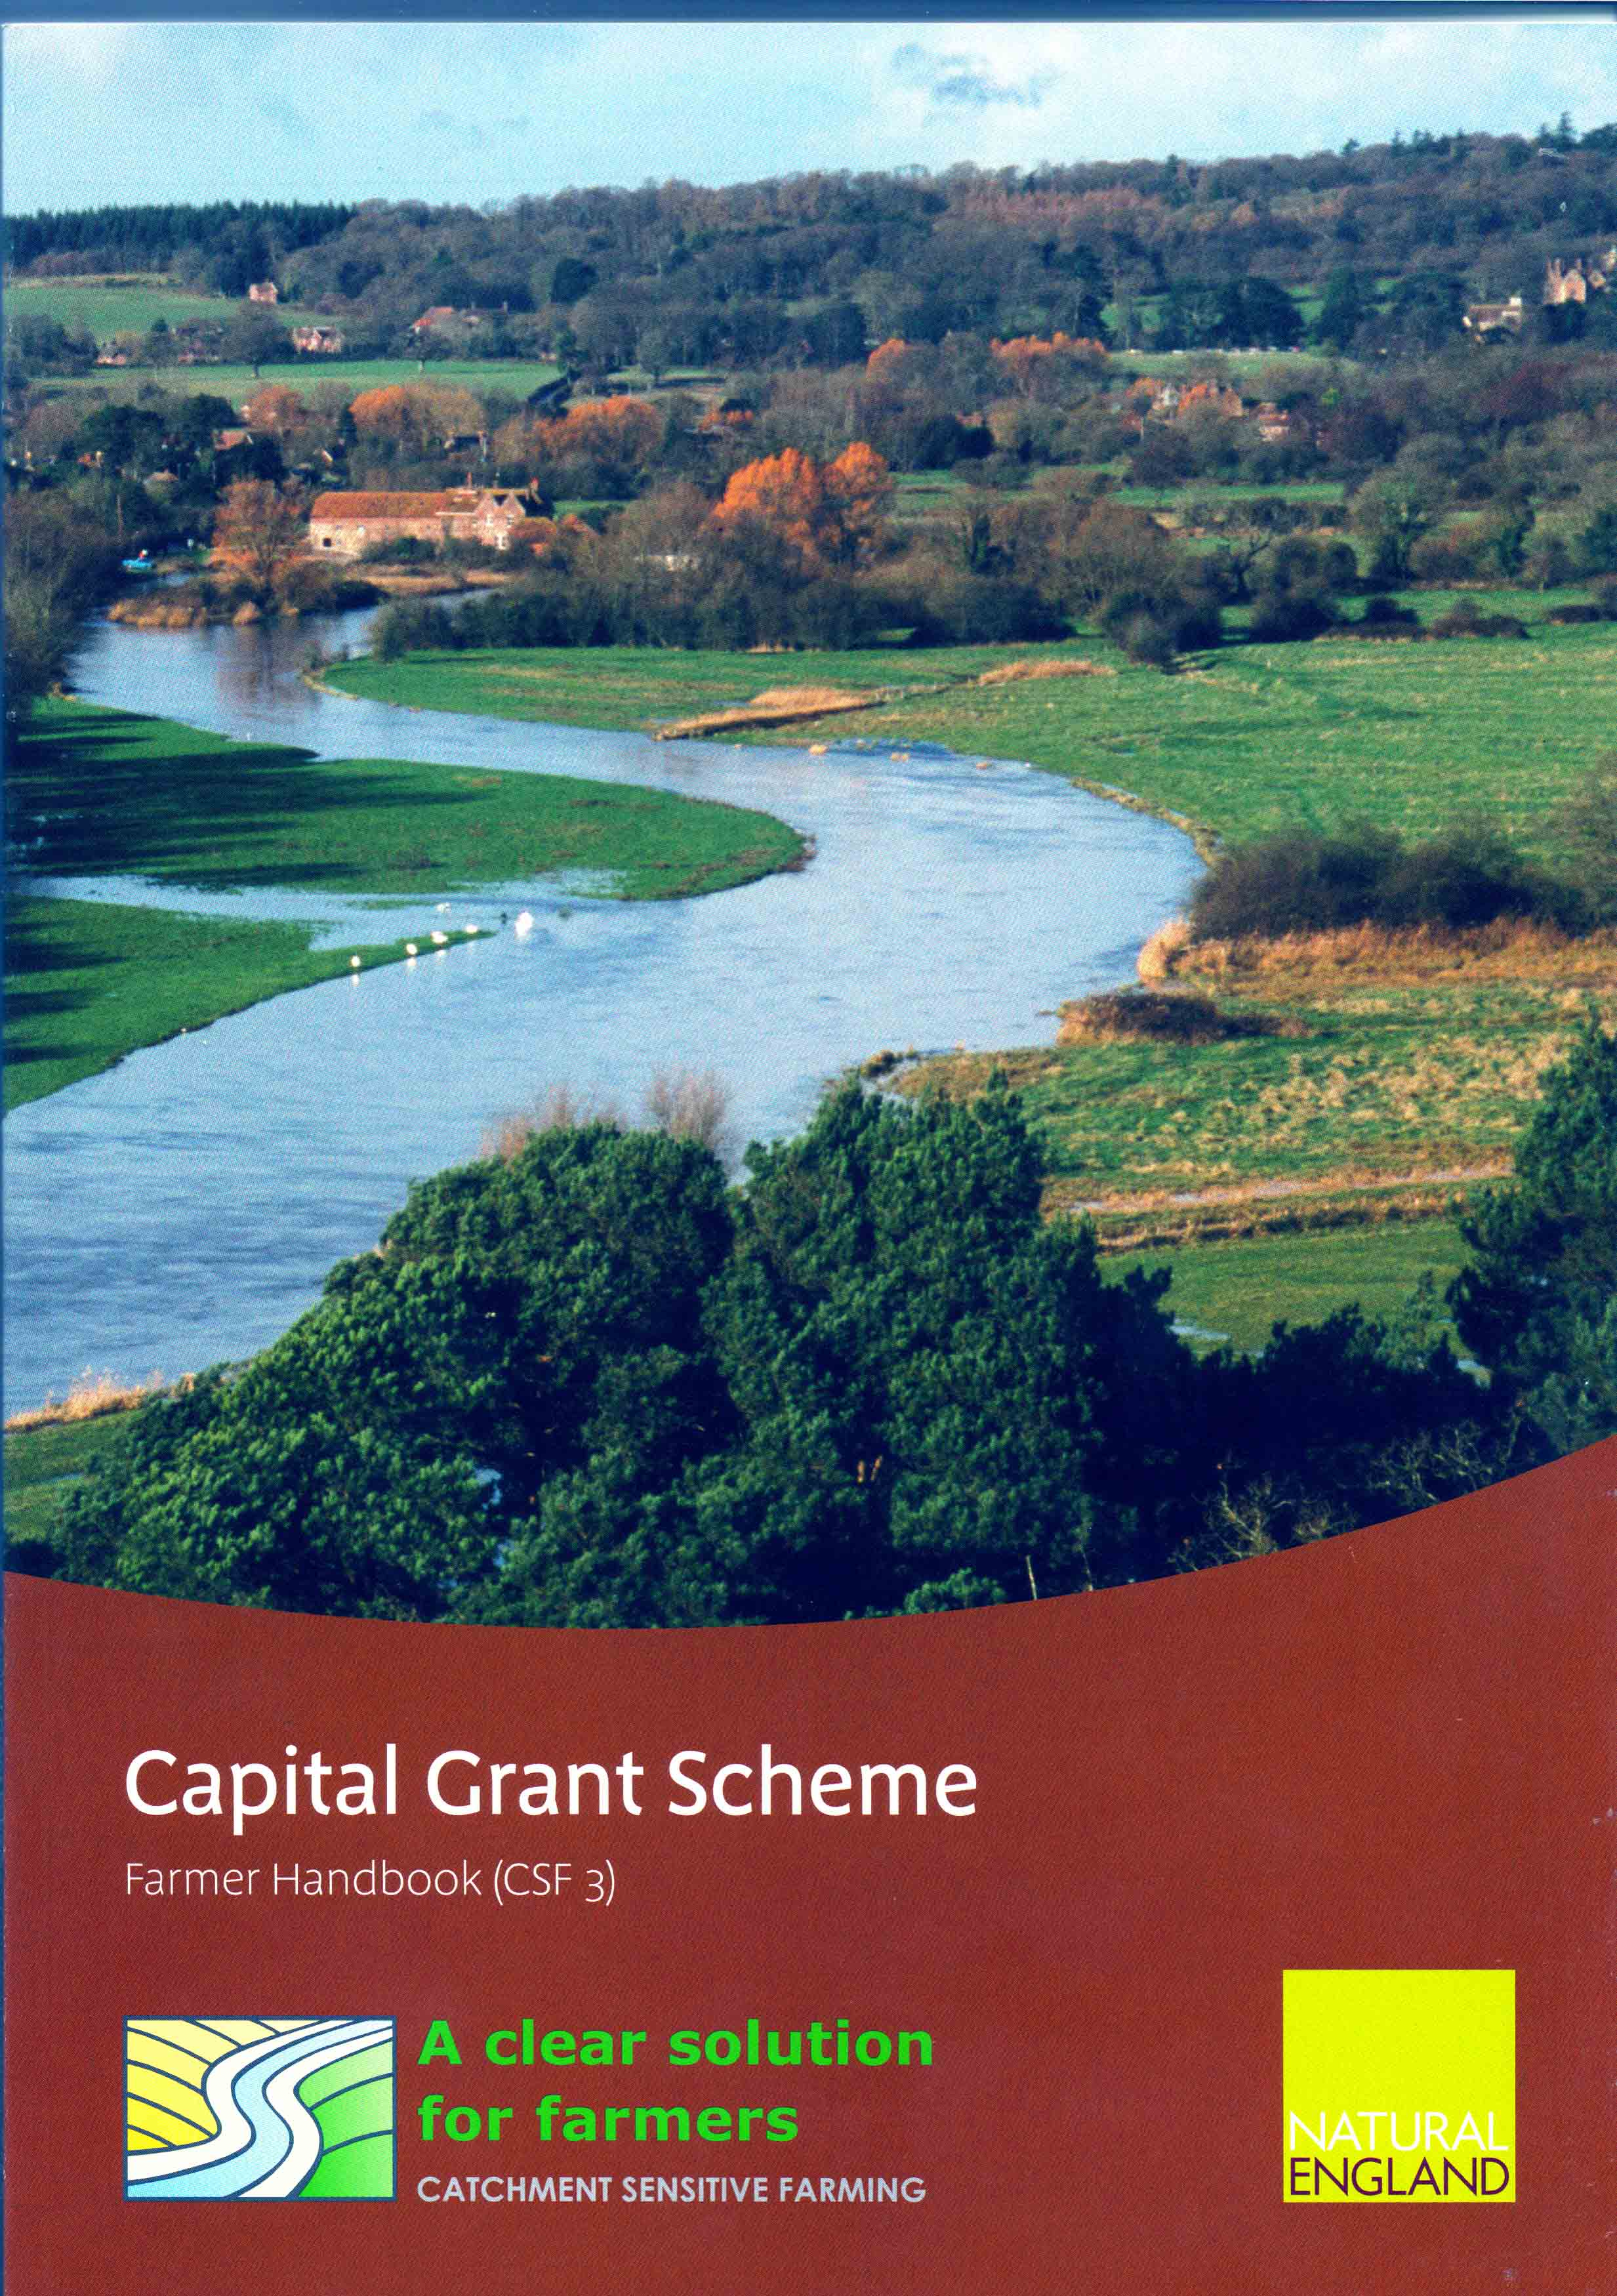 Capital Grant Scheme farmers' application pack